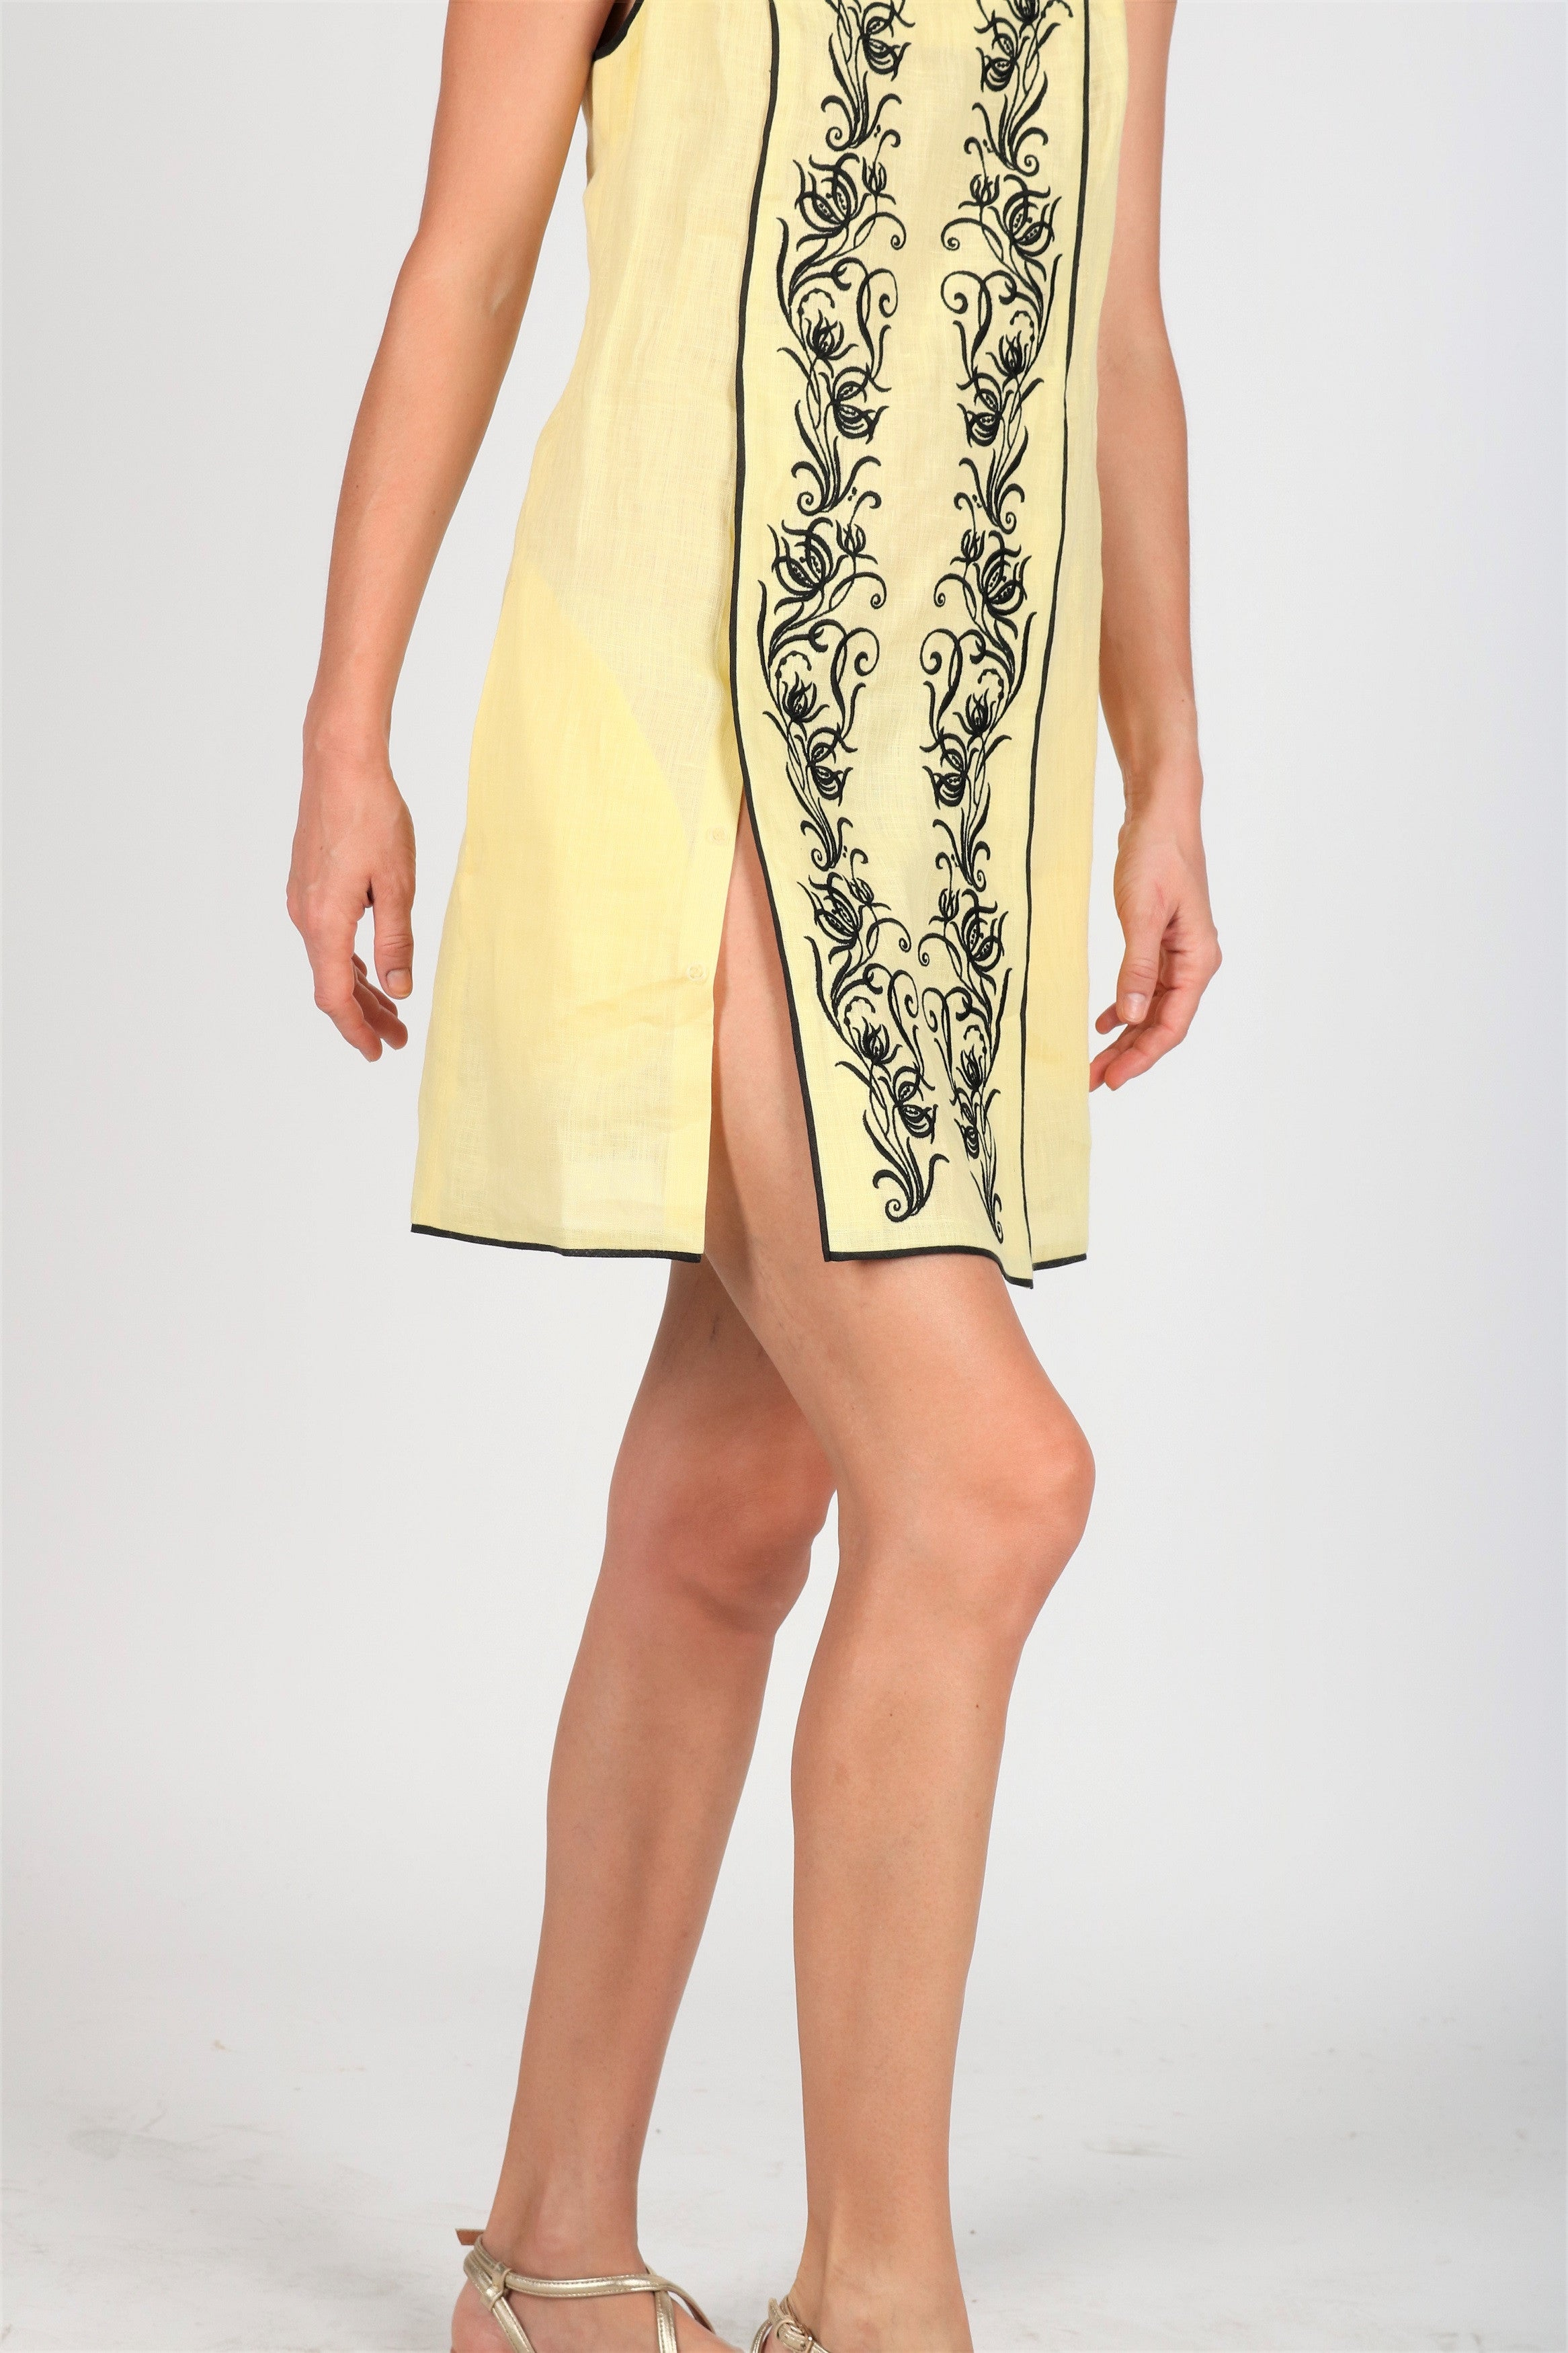 Fanm Mon BANDA Pale Yellow Black Floral Embroidery Vyshyvanka MINI Dress size XS-XXL